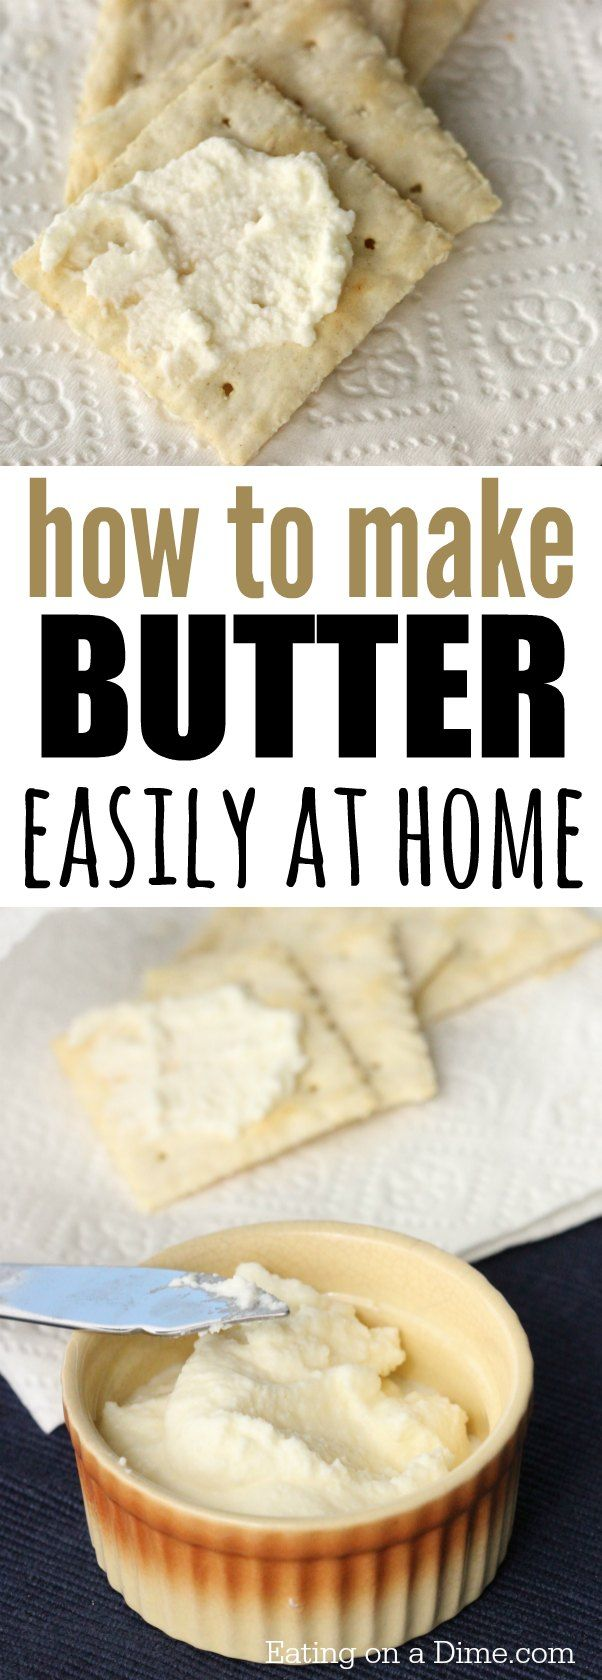 Try this delicious Homemade butter recipe. How to make butter with heavy whipping cream that tastes great. Making butter at home is super easy and fun for the kids